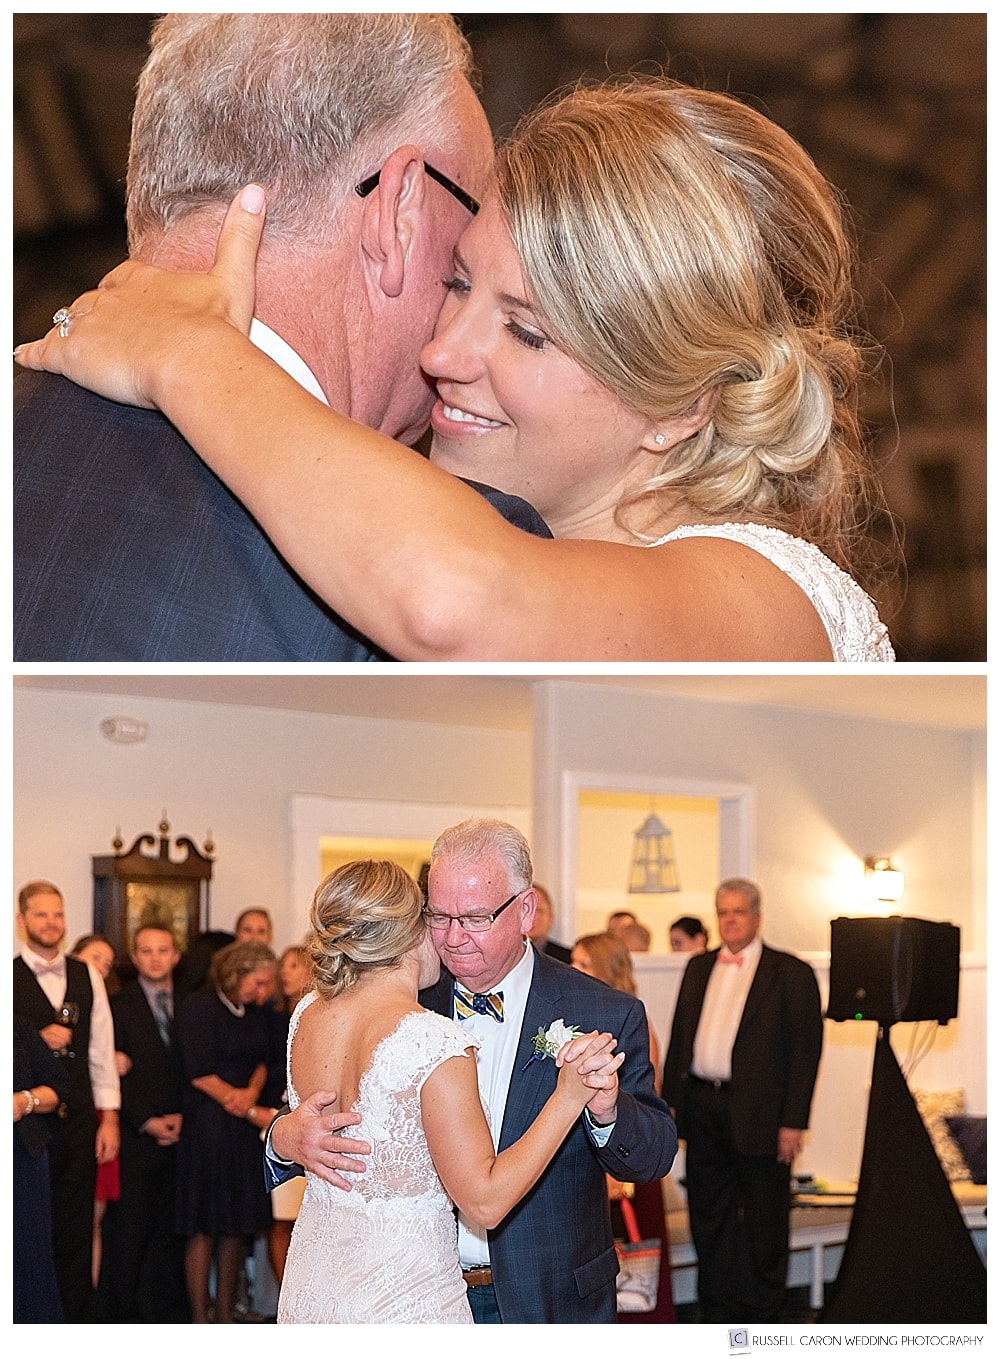 photos of bride dancing with her father